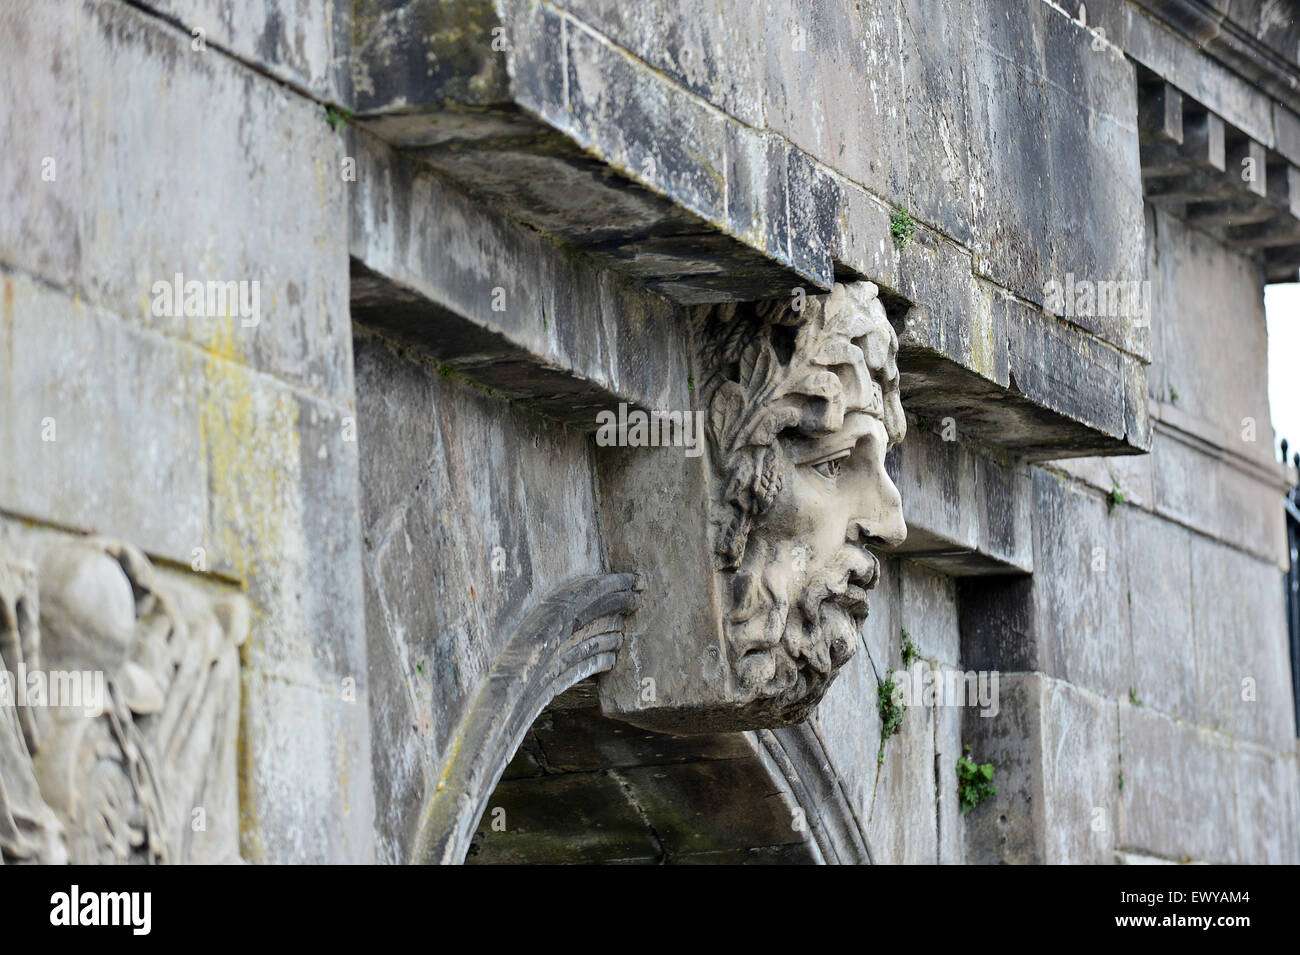 Sculpted head representing the River Foyle god on Bishop's Gate, Londonderry. - Stock Image